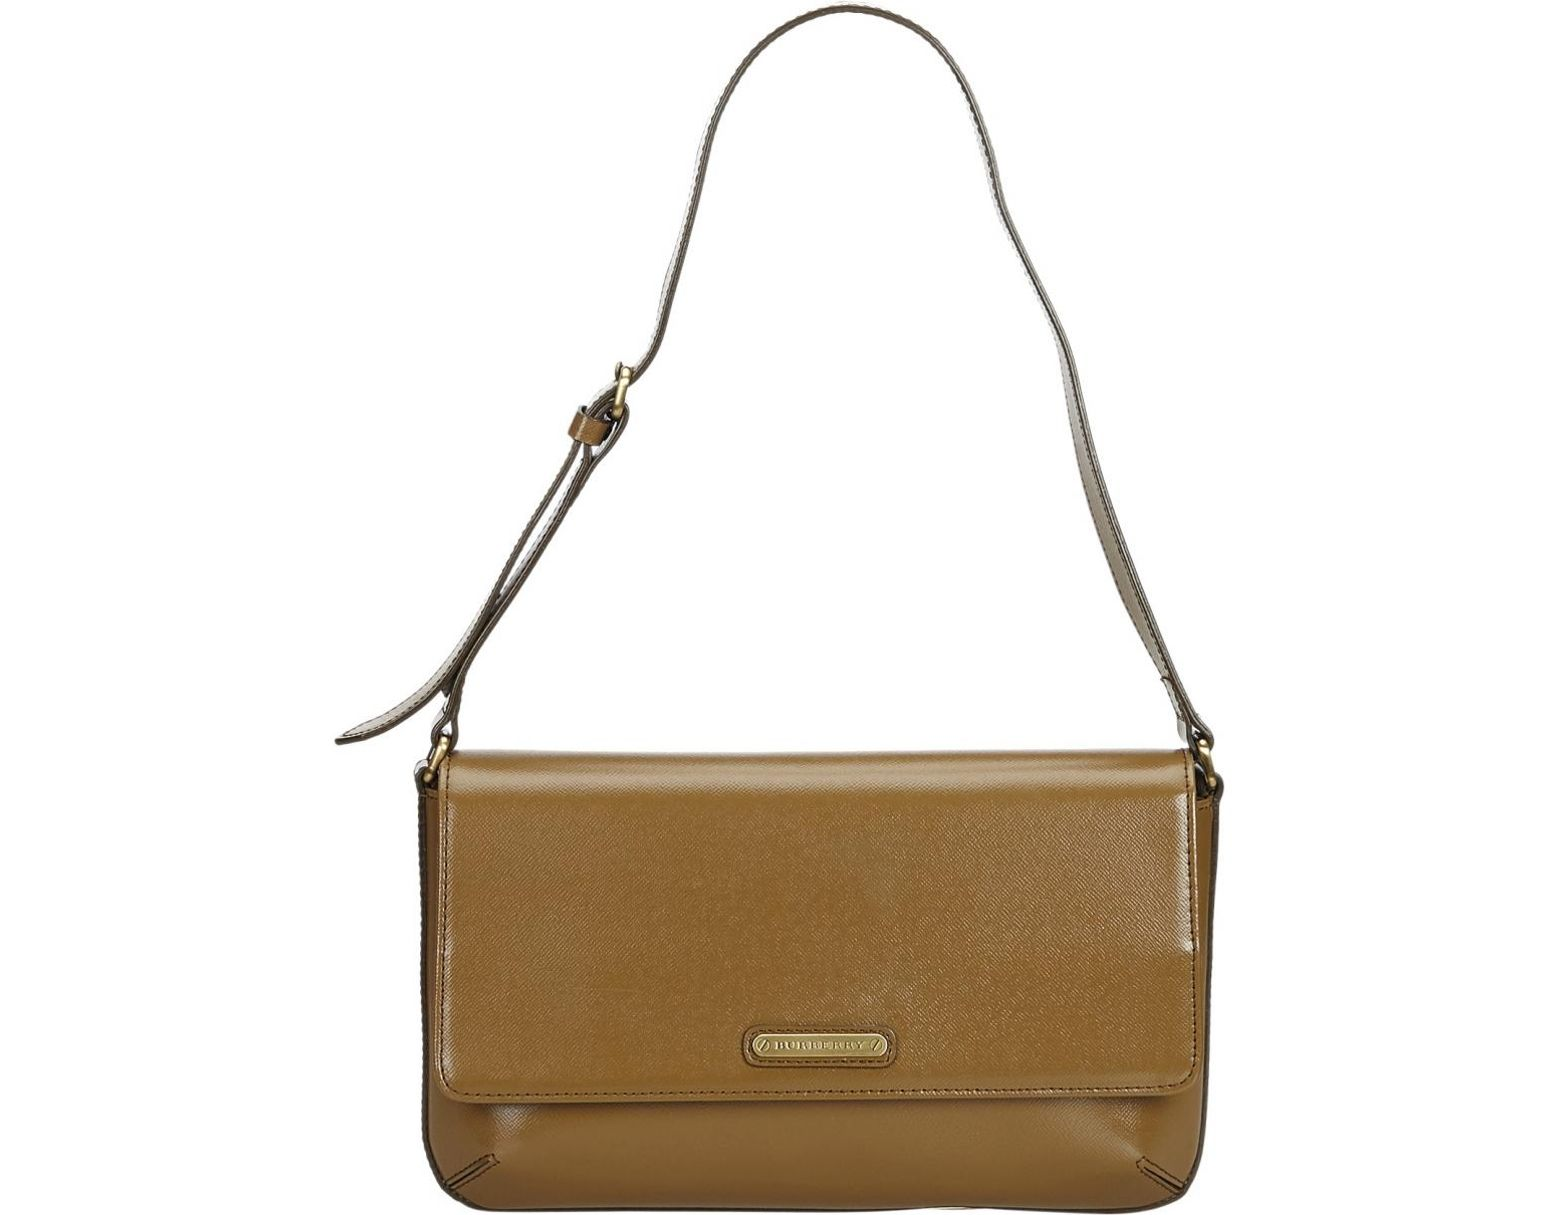 99756f79f51 Burberry Brown Leather Handbag in Brown - Lyst